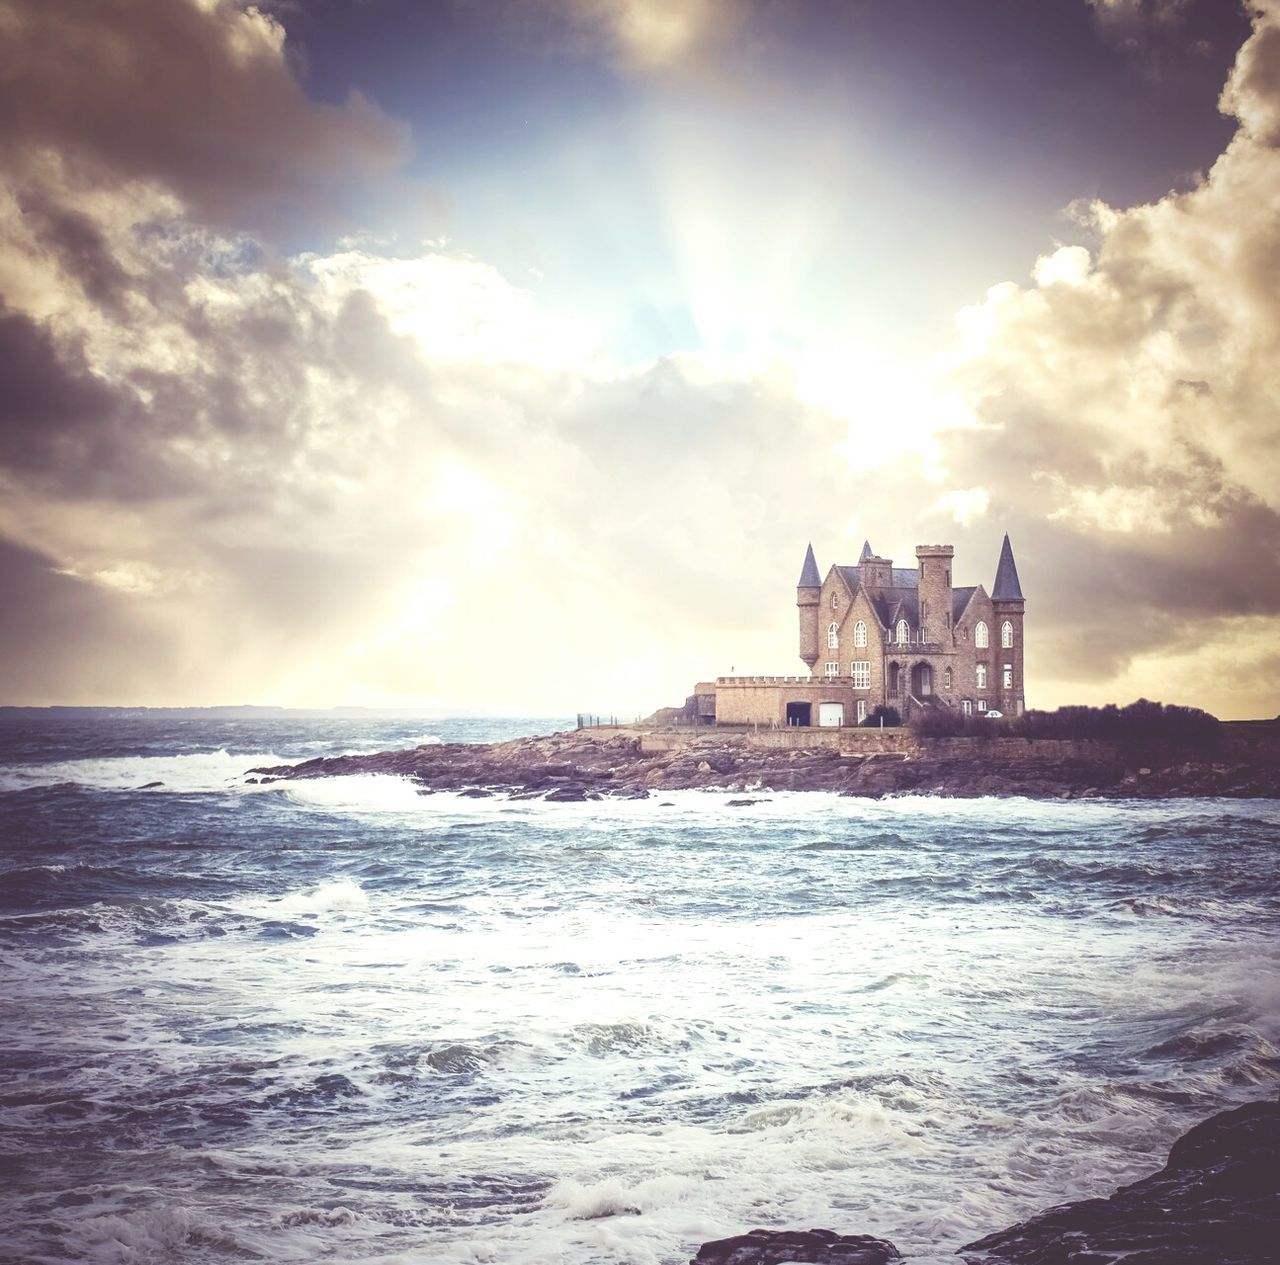 sea, water, architecture, sky, history, built structure, castle, cloud - sky, travel destinations, building exterior, wave, beauty in nature, no people, nature, outdoors, scenics, day, sunset, horizon over water